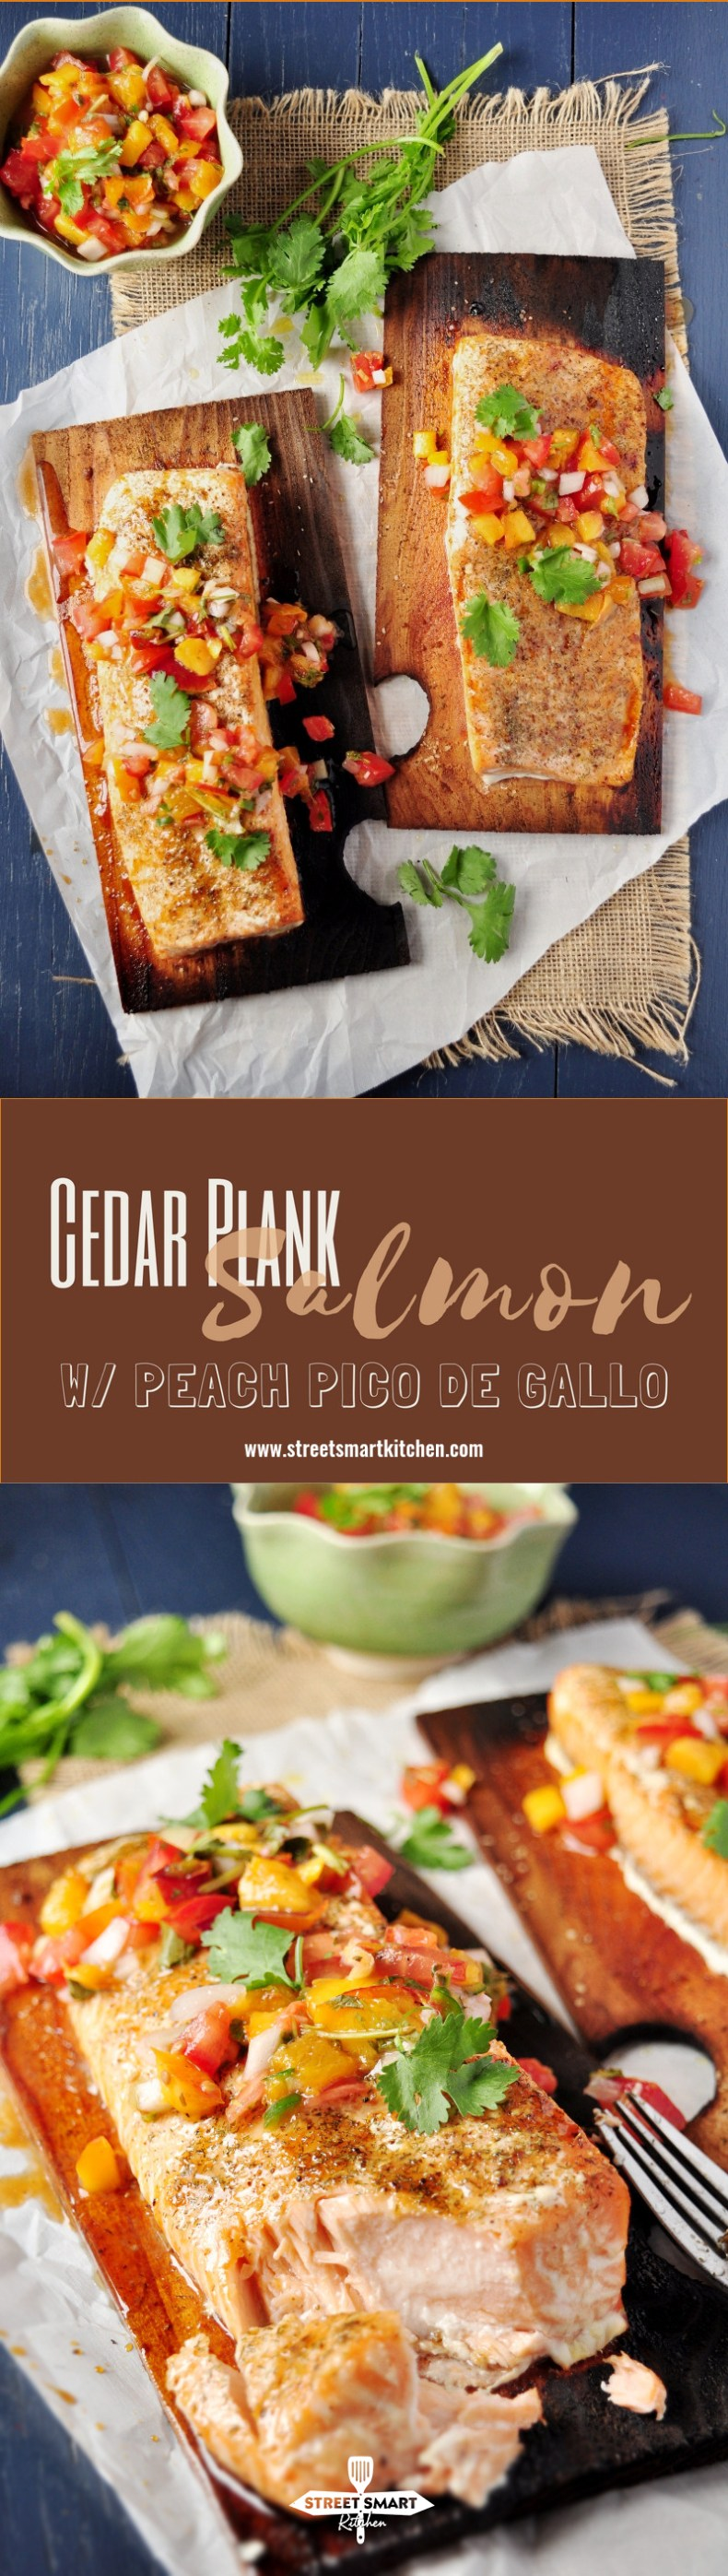 Last year, I got introduced to cedar plank for the first time in my life. We were in Jacksonville, FL where my brother-in-law, Felix taught me how to grill like a boss. Needless to say, the best way to grill fish is to put it on a cedar plank, which allows the fish to stay incredibly tender and moist while grilling. And it picks up the woodsy flavors from the cedar along with the smoky flavors from the grill.